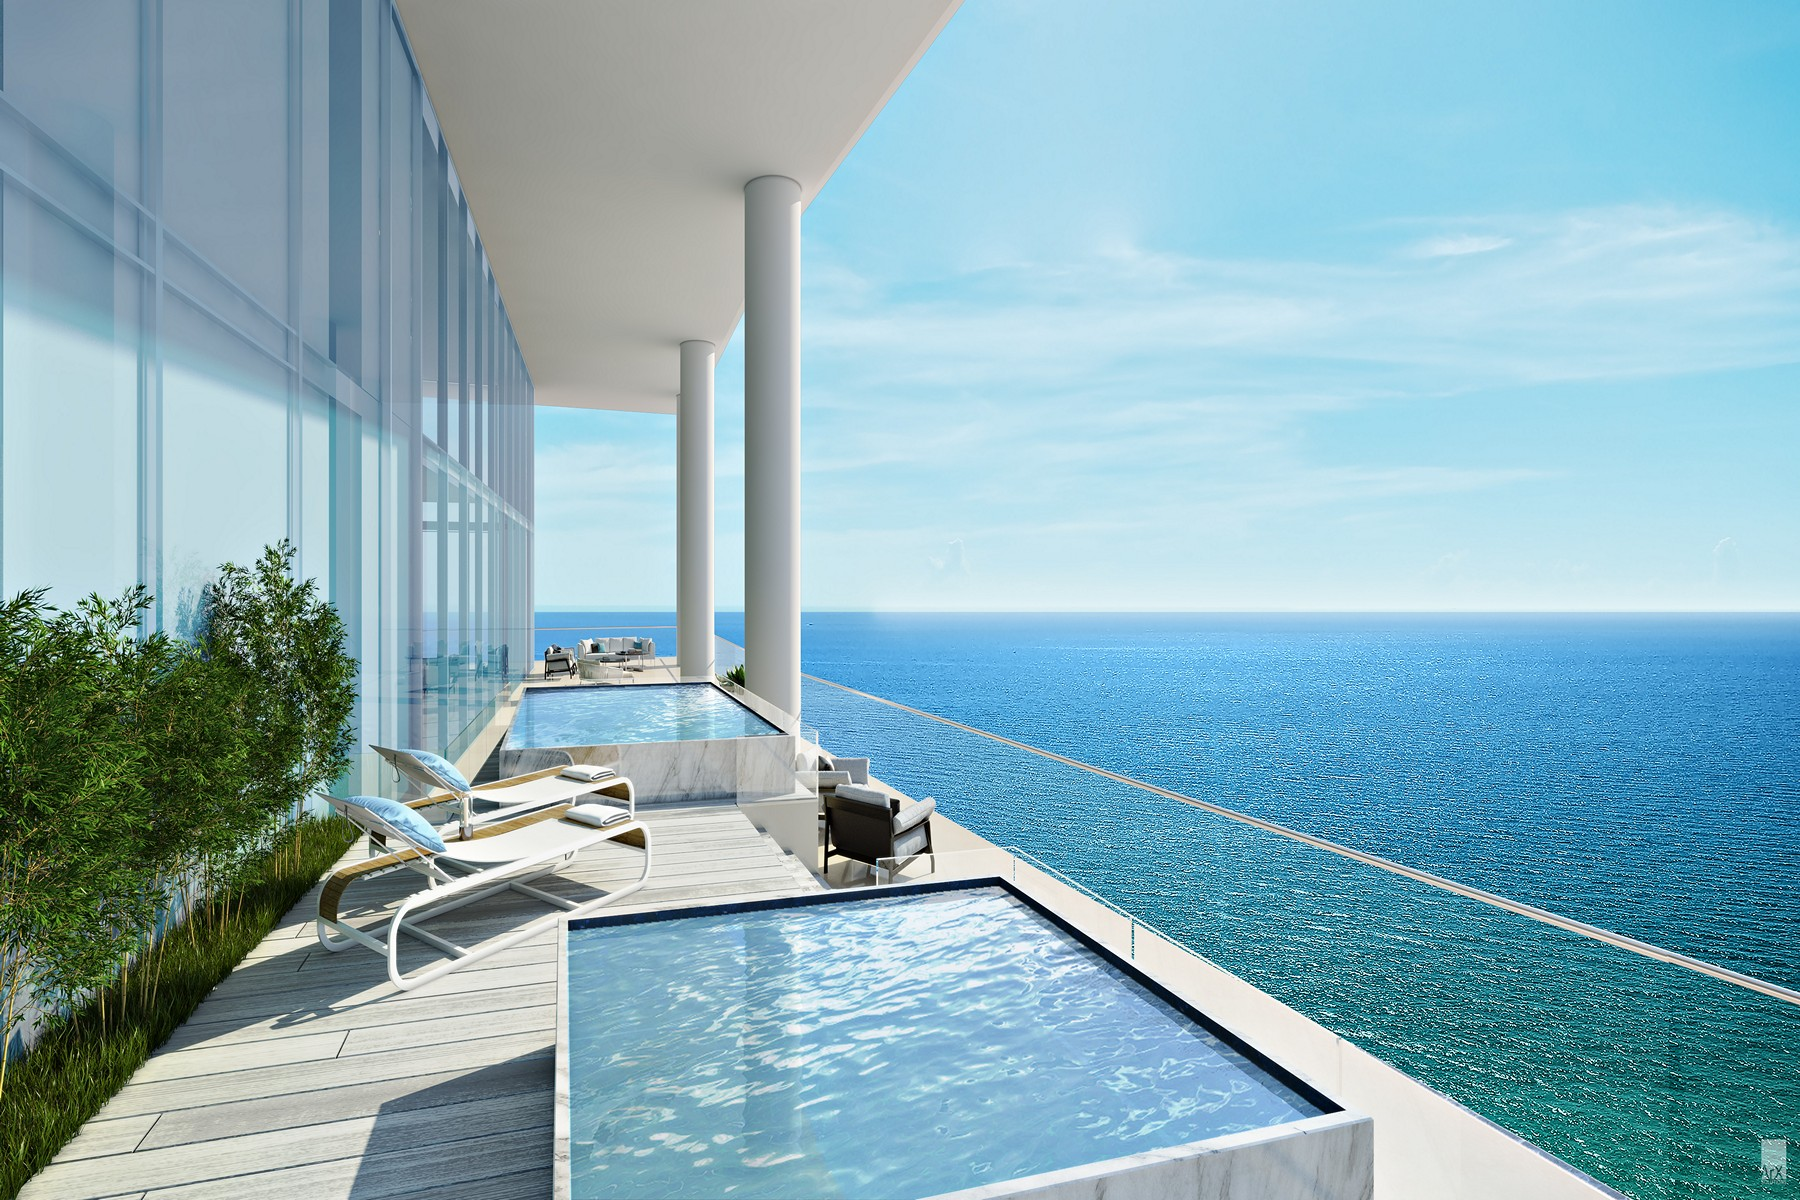 Condominio por un Venta en Turnberry Ocean Club 18501 Collins Ave #1701 Sunny Isles, Florida 33160 Estados Unidos